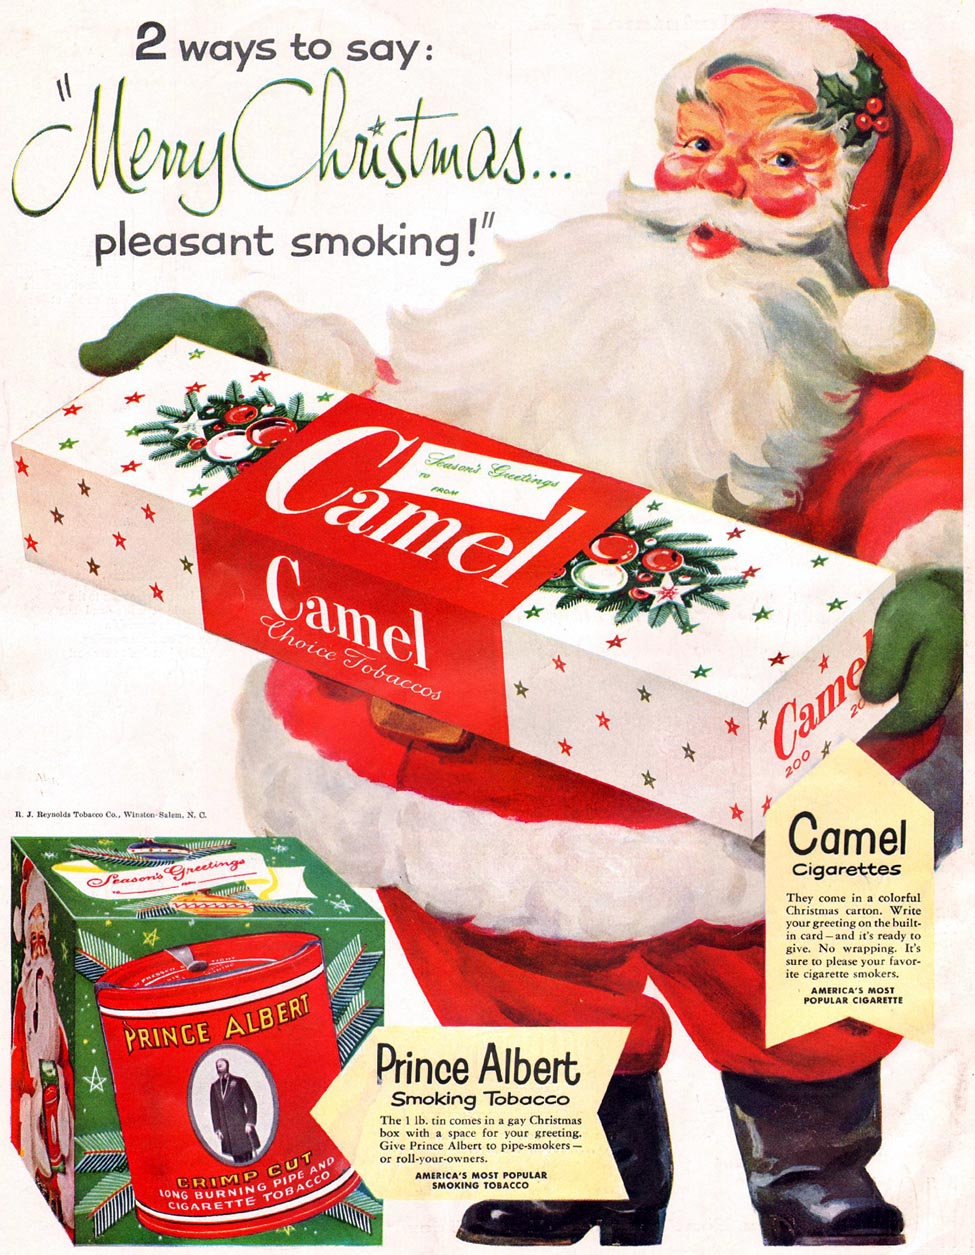 R. J. Reynolds Tobacco Company - published in Woman's Home Companion - December 1, 1952